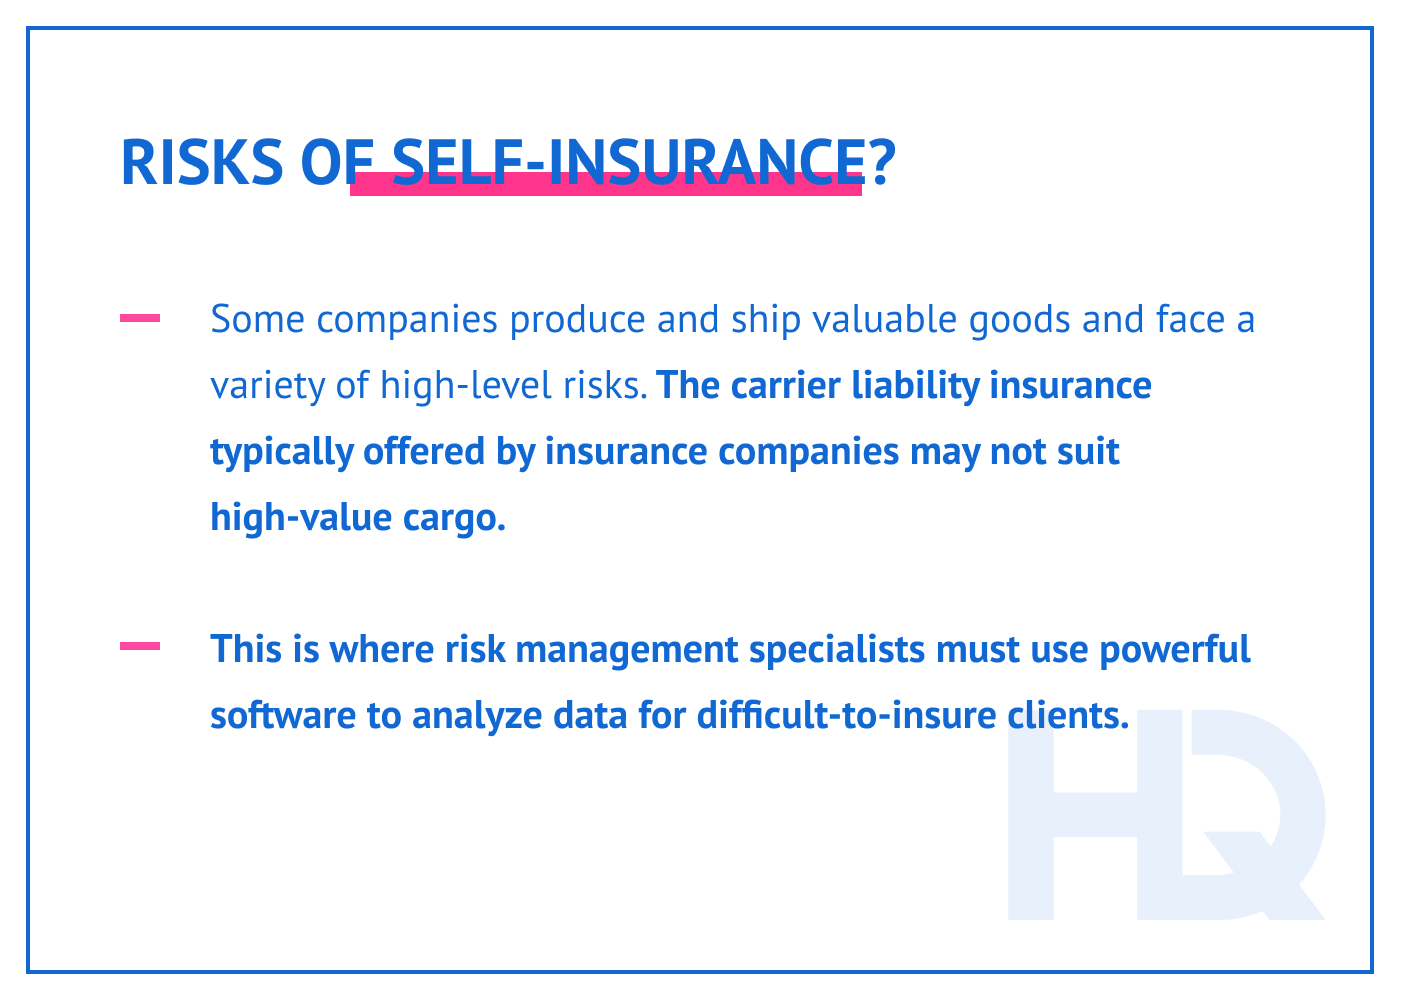 How the risk of self-insurance is mitigated.